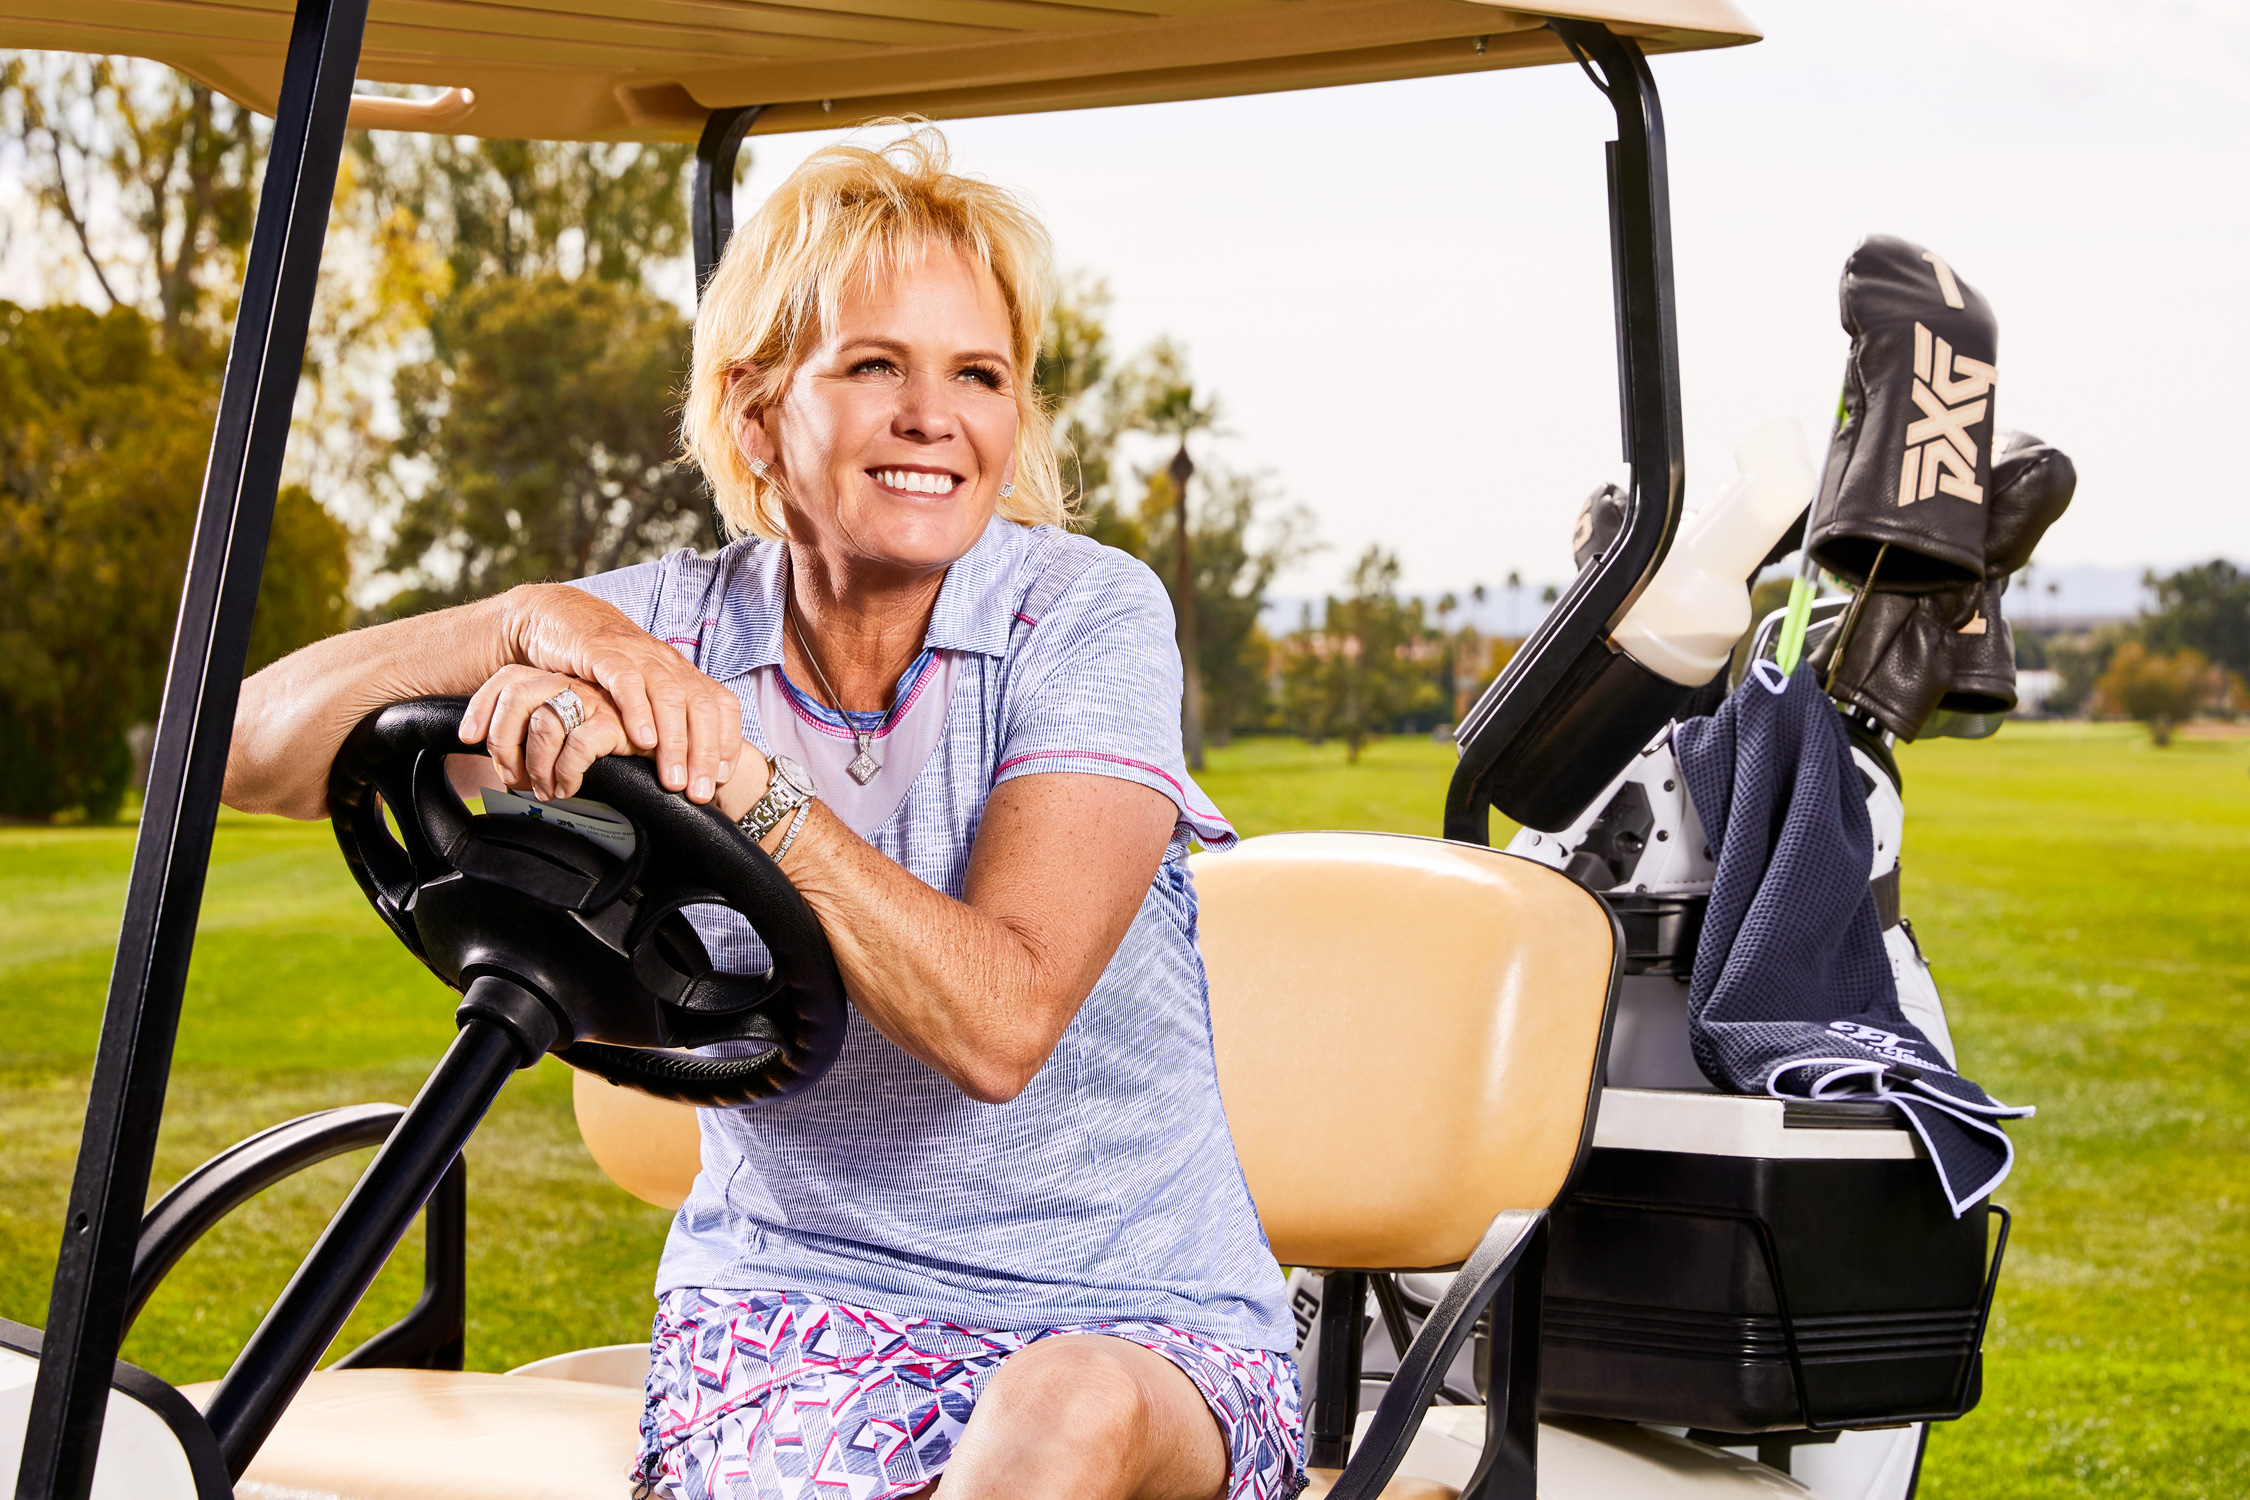 Tina Tombs - Golf Magazine  - Stephen Denton Photography - Los Angeles, CA / Phoenix, AZ Commercial Photographer